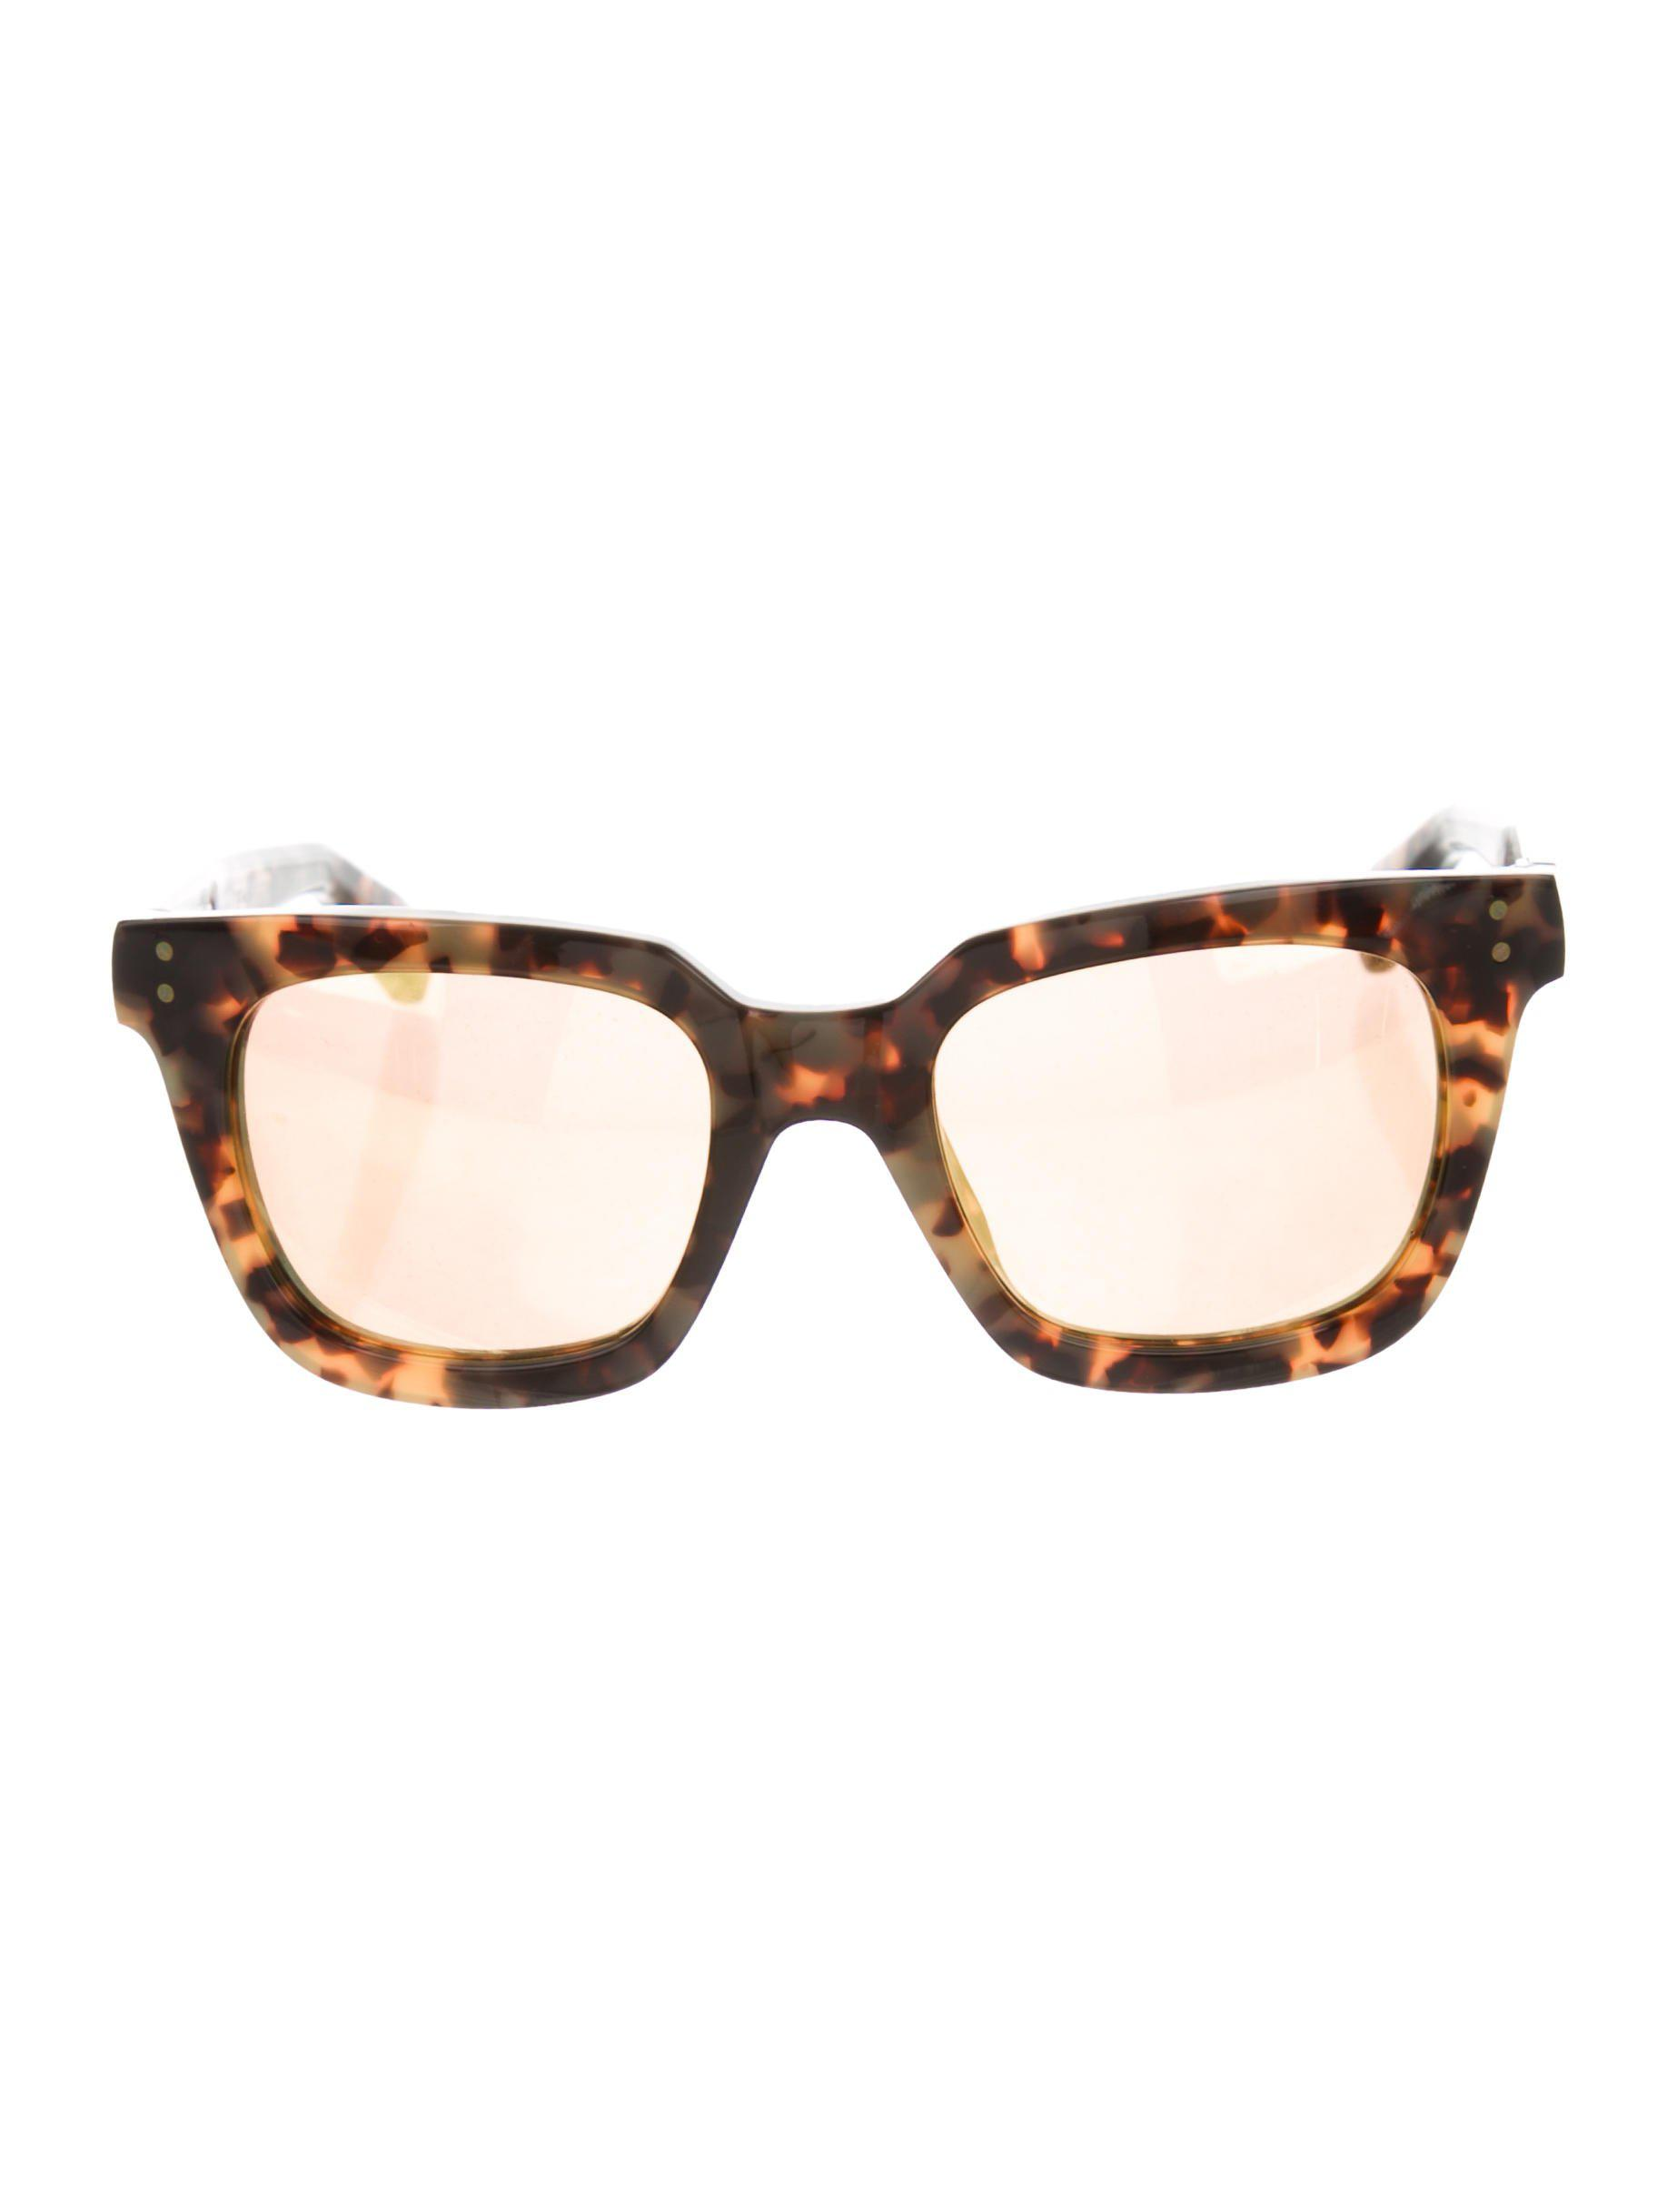 6f5c66a19ab9 Lyst - Marc Jacobs Tortoiseshell Acetate Sunglasses Brown in Yellow